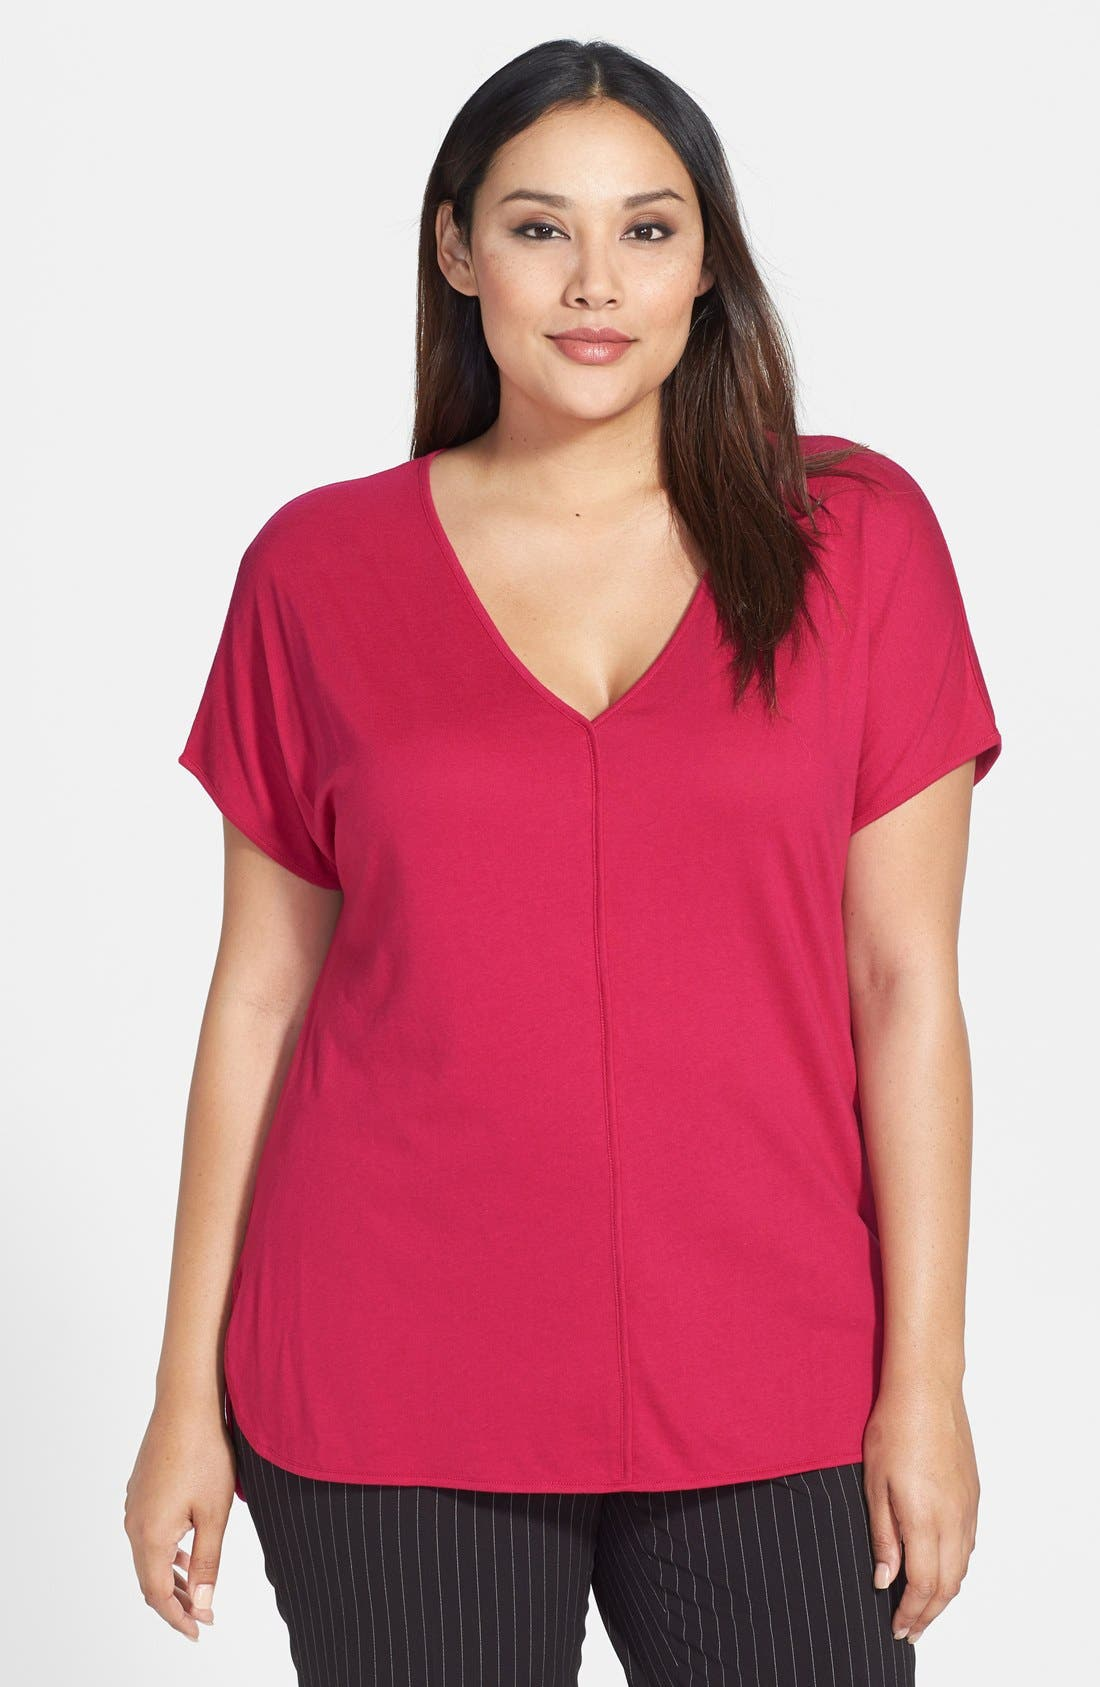 Alternate Image 1 Selected - MICHAEL Michael Kors Short Sleeve V-Neck Top (Plus Size)